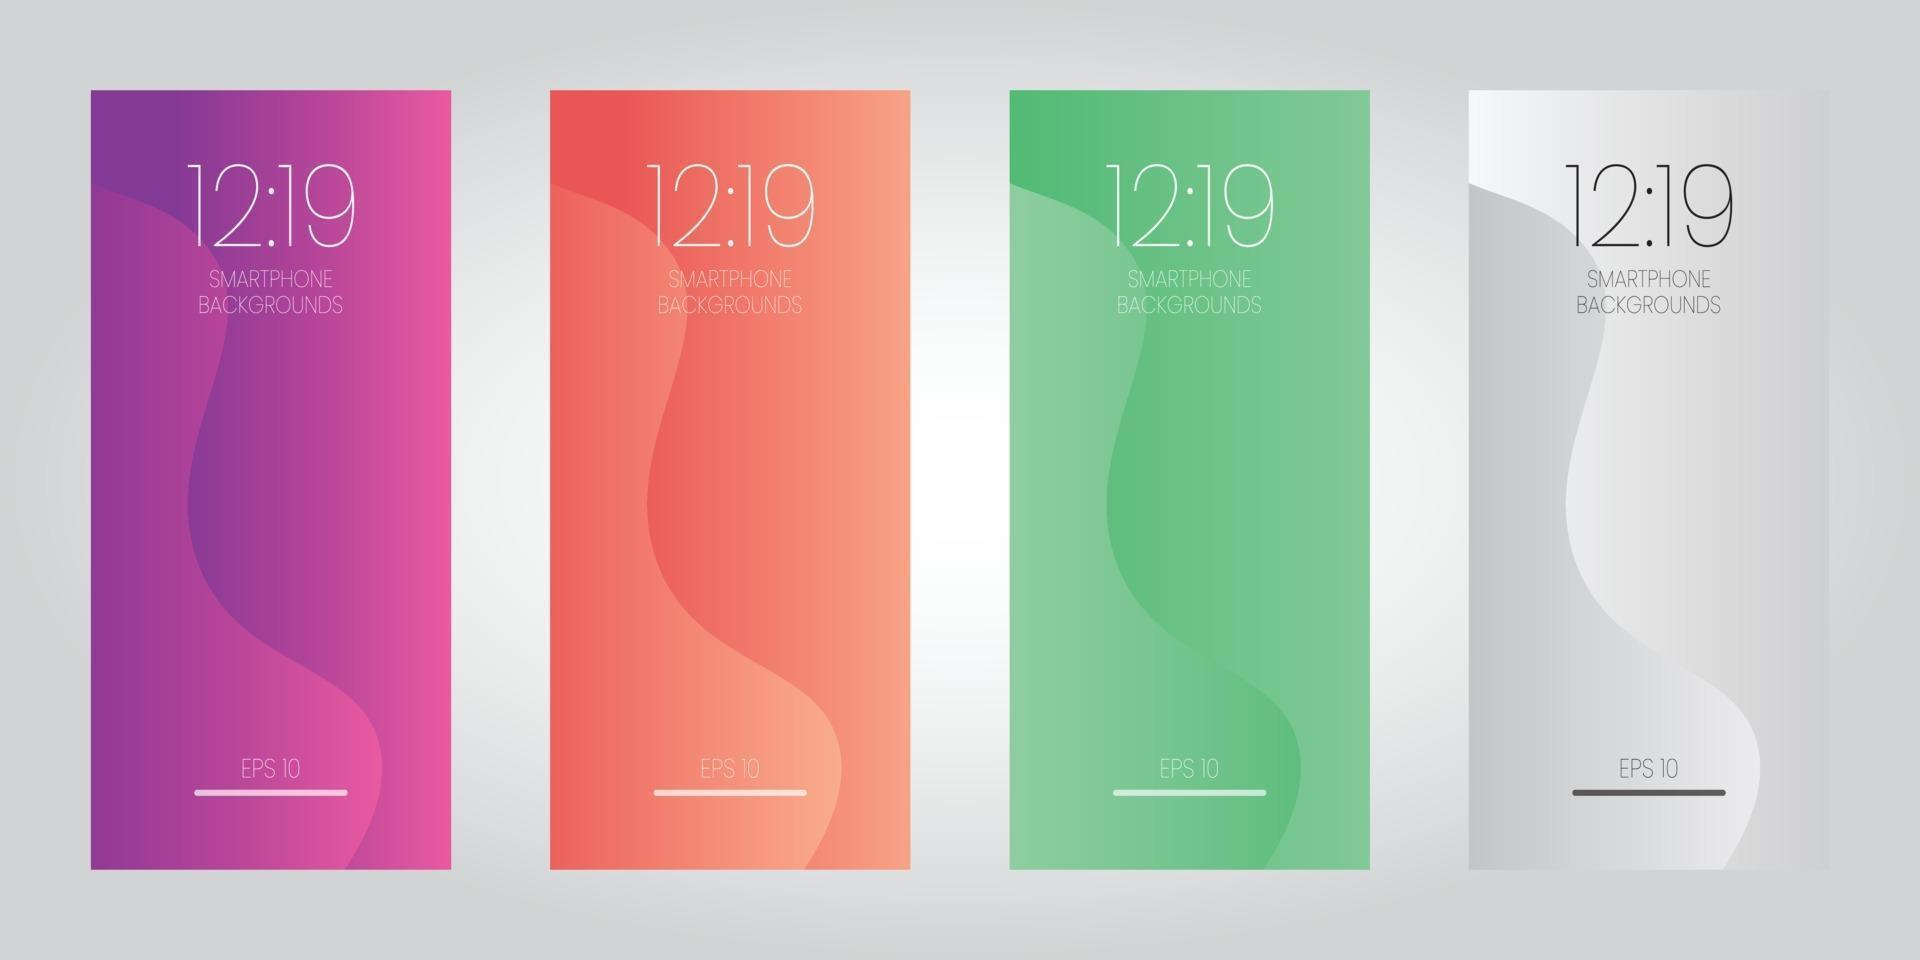 Abstract style wave wallpaper for smartphone mobile device vector